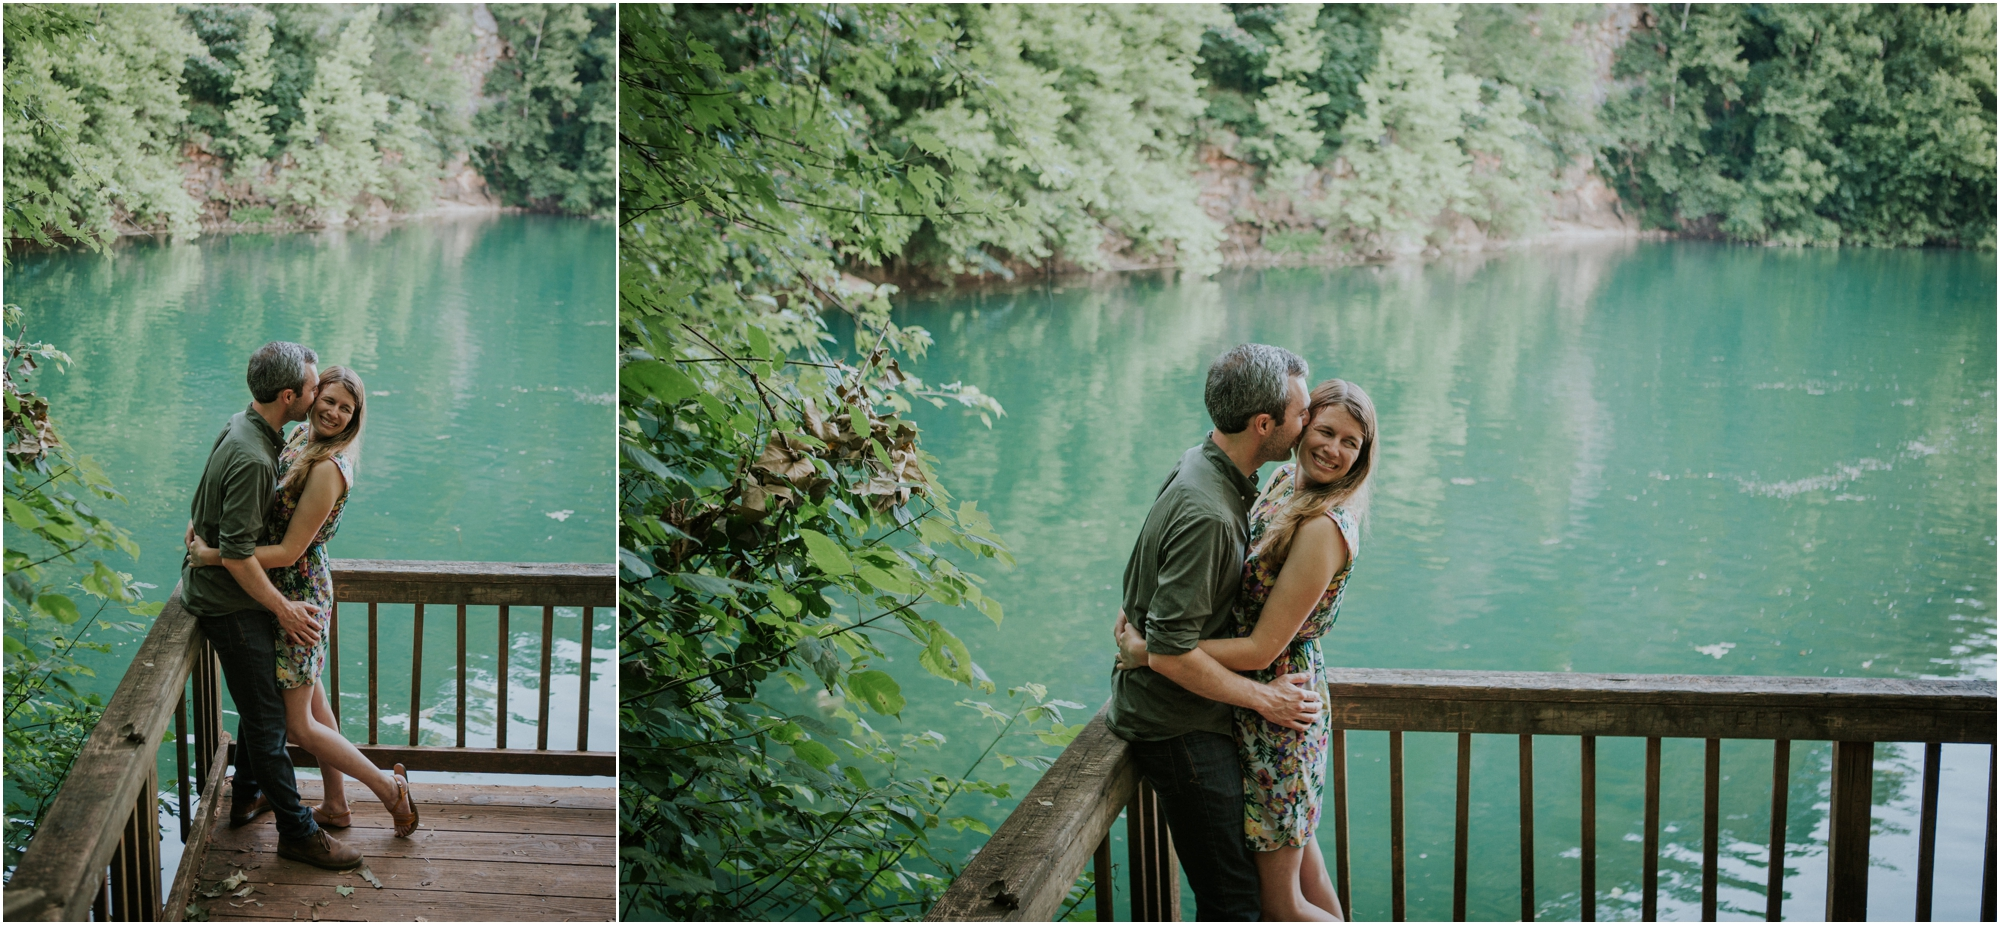 meads-quarry-ijams-nature-center-knoxville-tennessee-engagement-session-summer-northeast-tn-adventurous-outdoors-lake-katy-sergent_0009.jpg